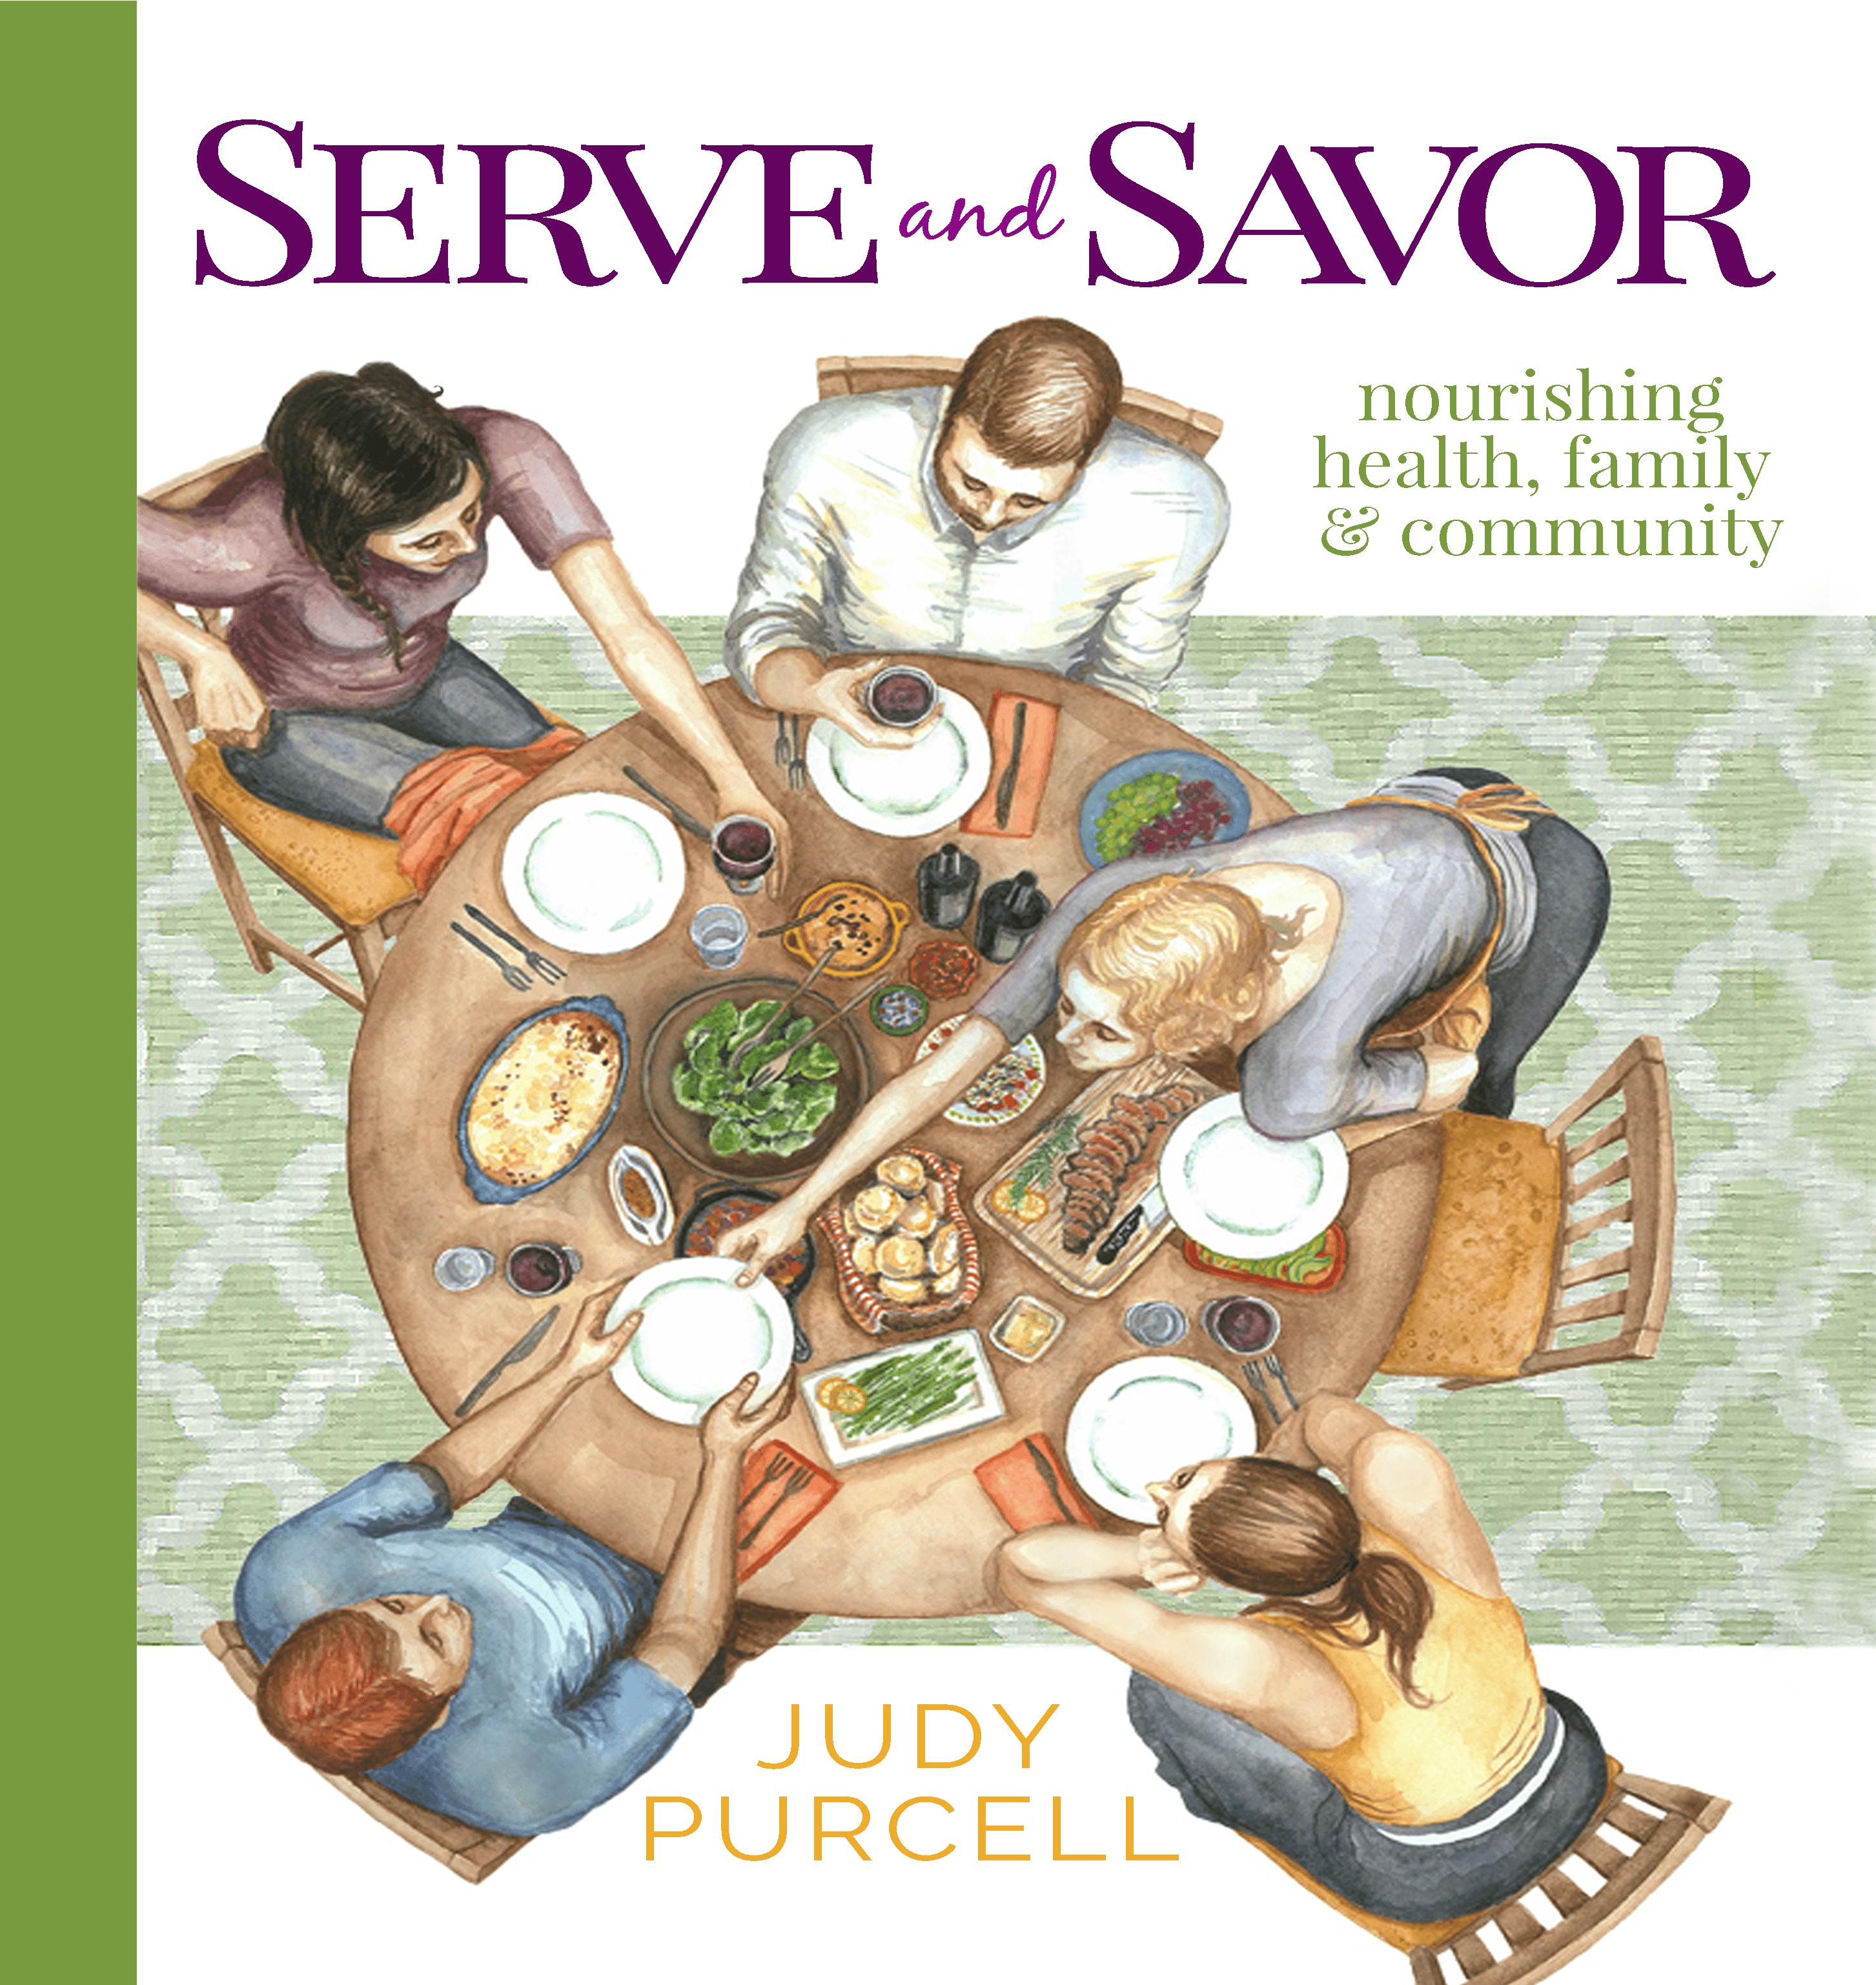 Serve and Savor: Nourishing health, family & community